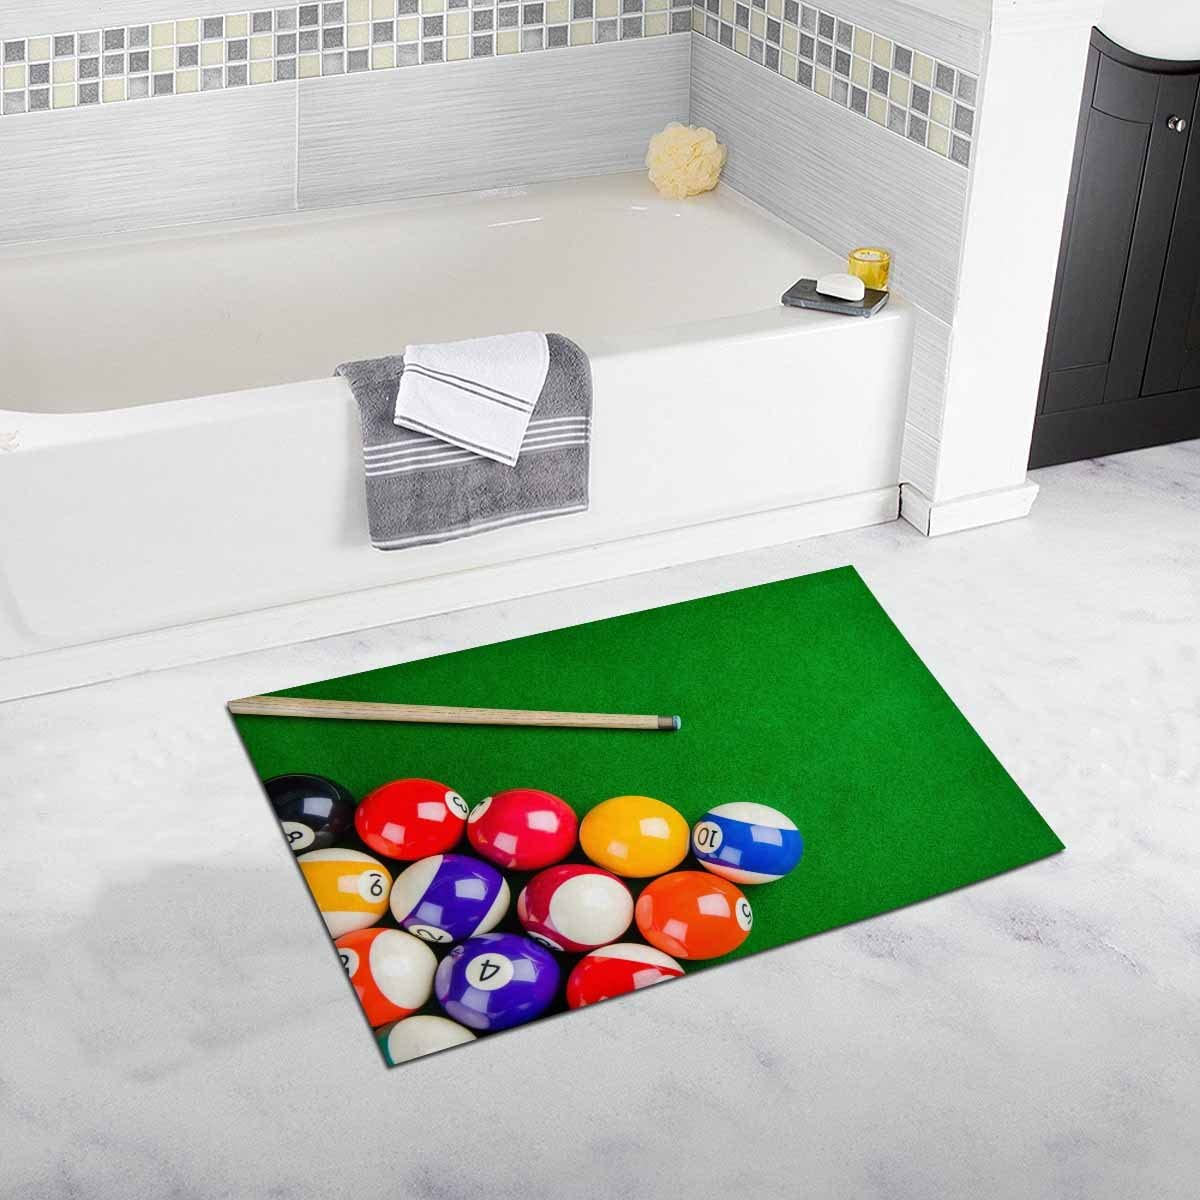 INTERESTPRINT Billiard Balls with Billiard Cue Snooker Pool Game Home Decor Non Slip Bath Rug Mats Absorbent Shower Rug for Bathroom Tub Bedroom Large Size 20 x 32 Inches